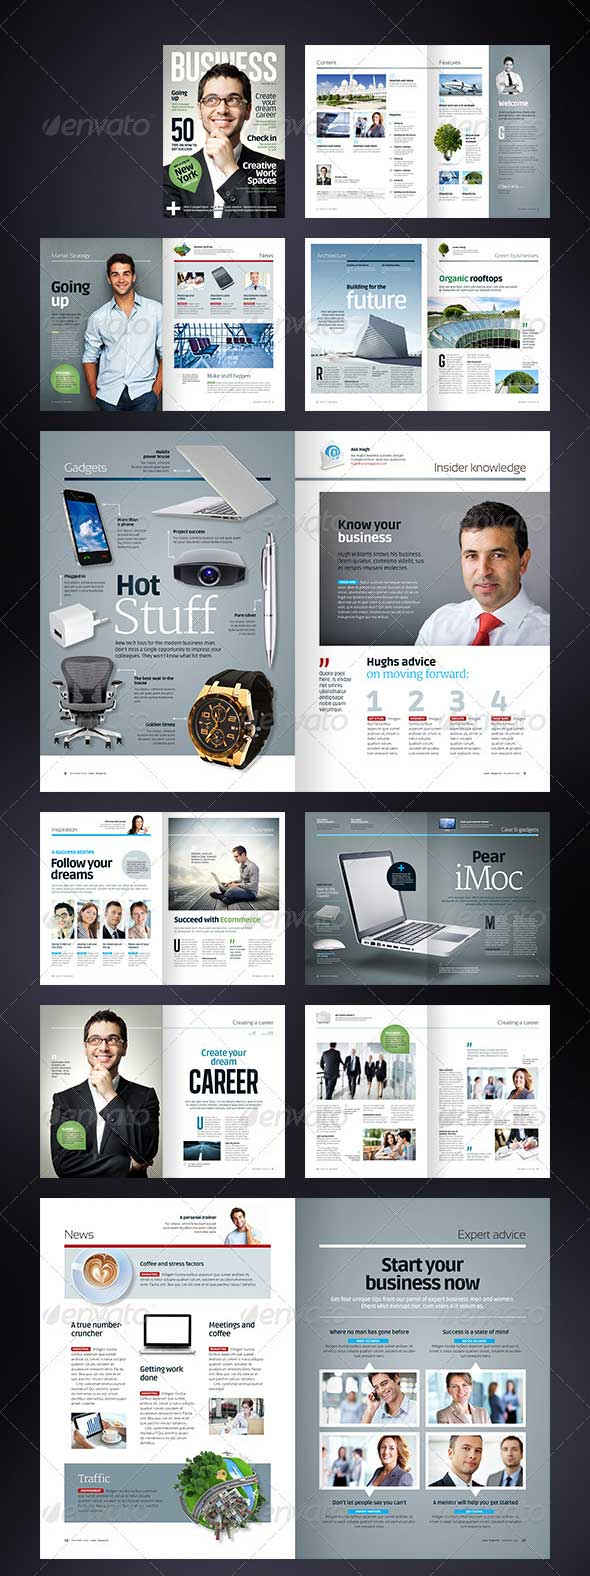 business-magazine-template-a4-letter-40-pages